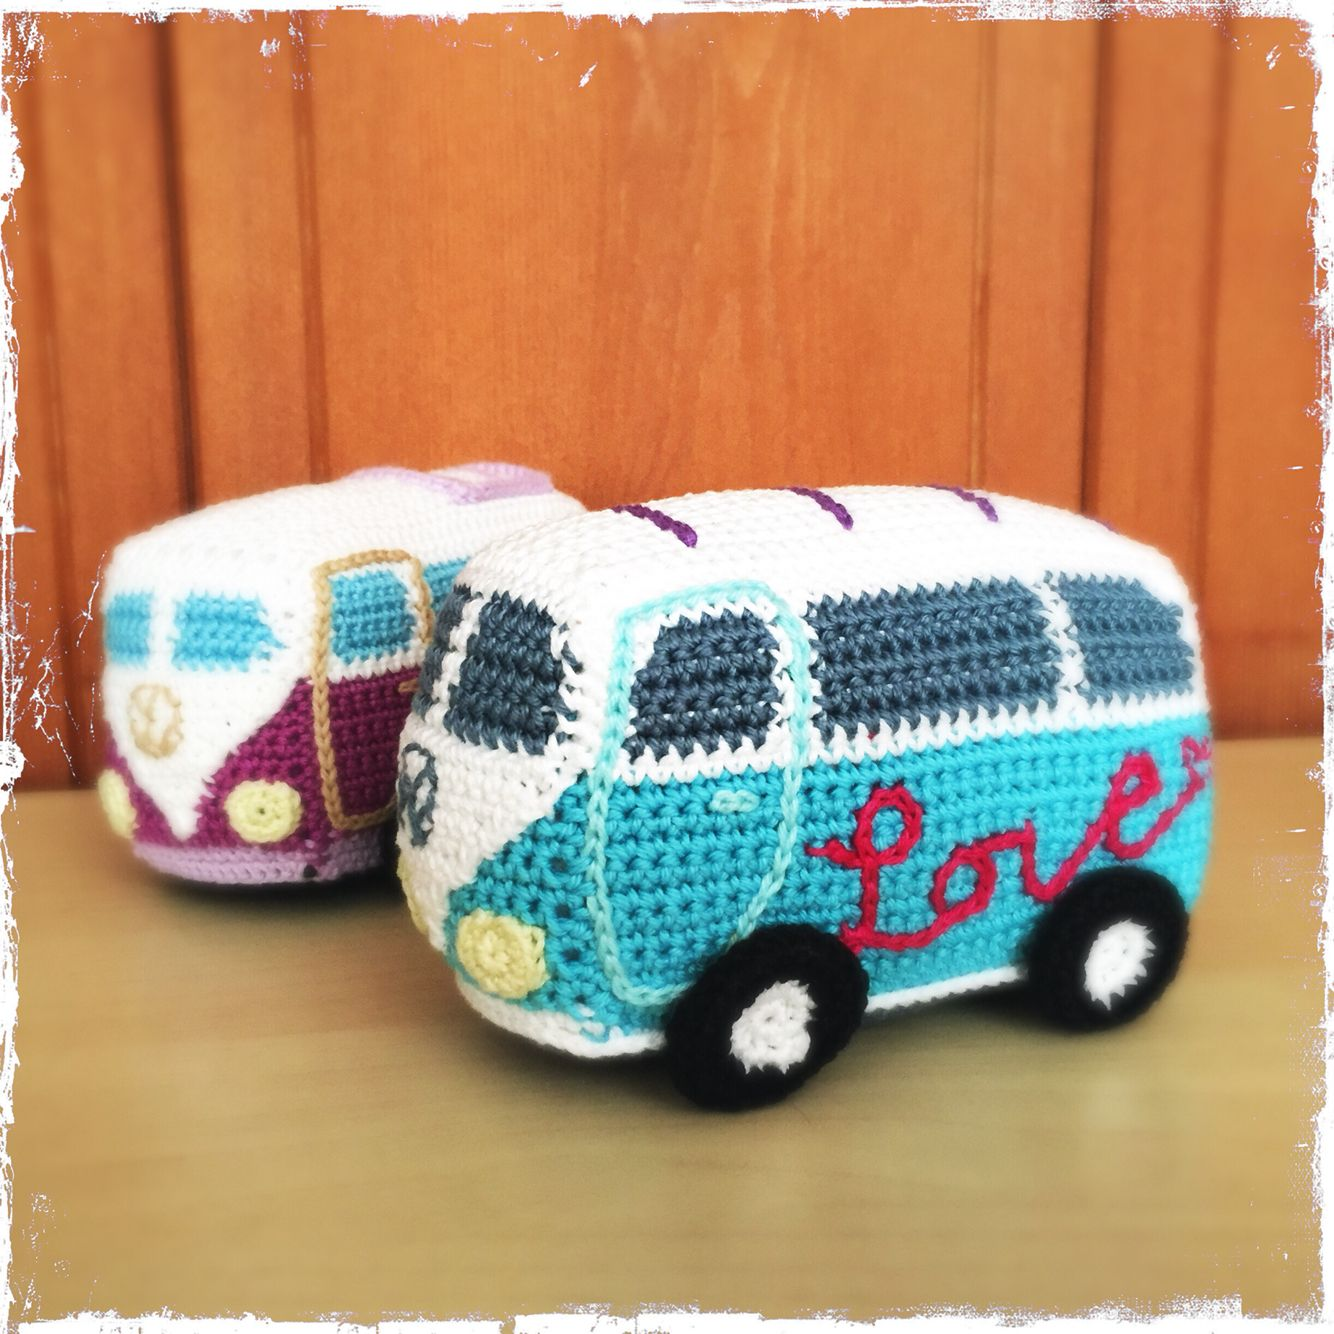 Crochet VW camper vans. (Inspiration). | Crochet Dolls | Pinterest ...